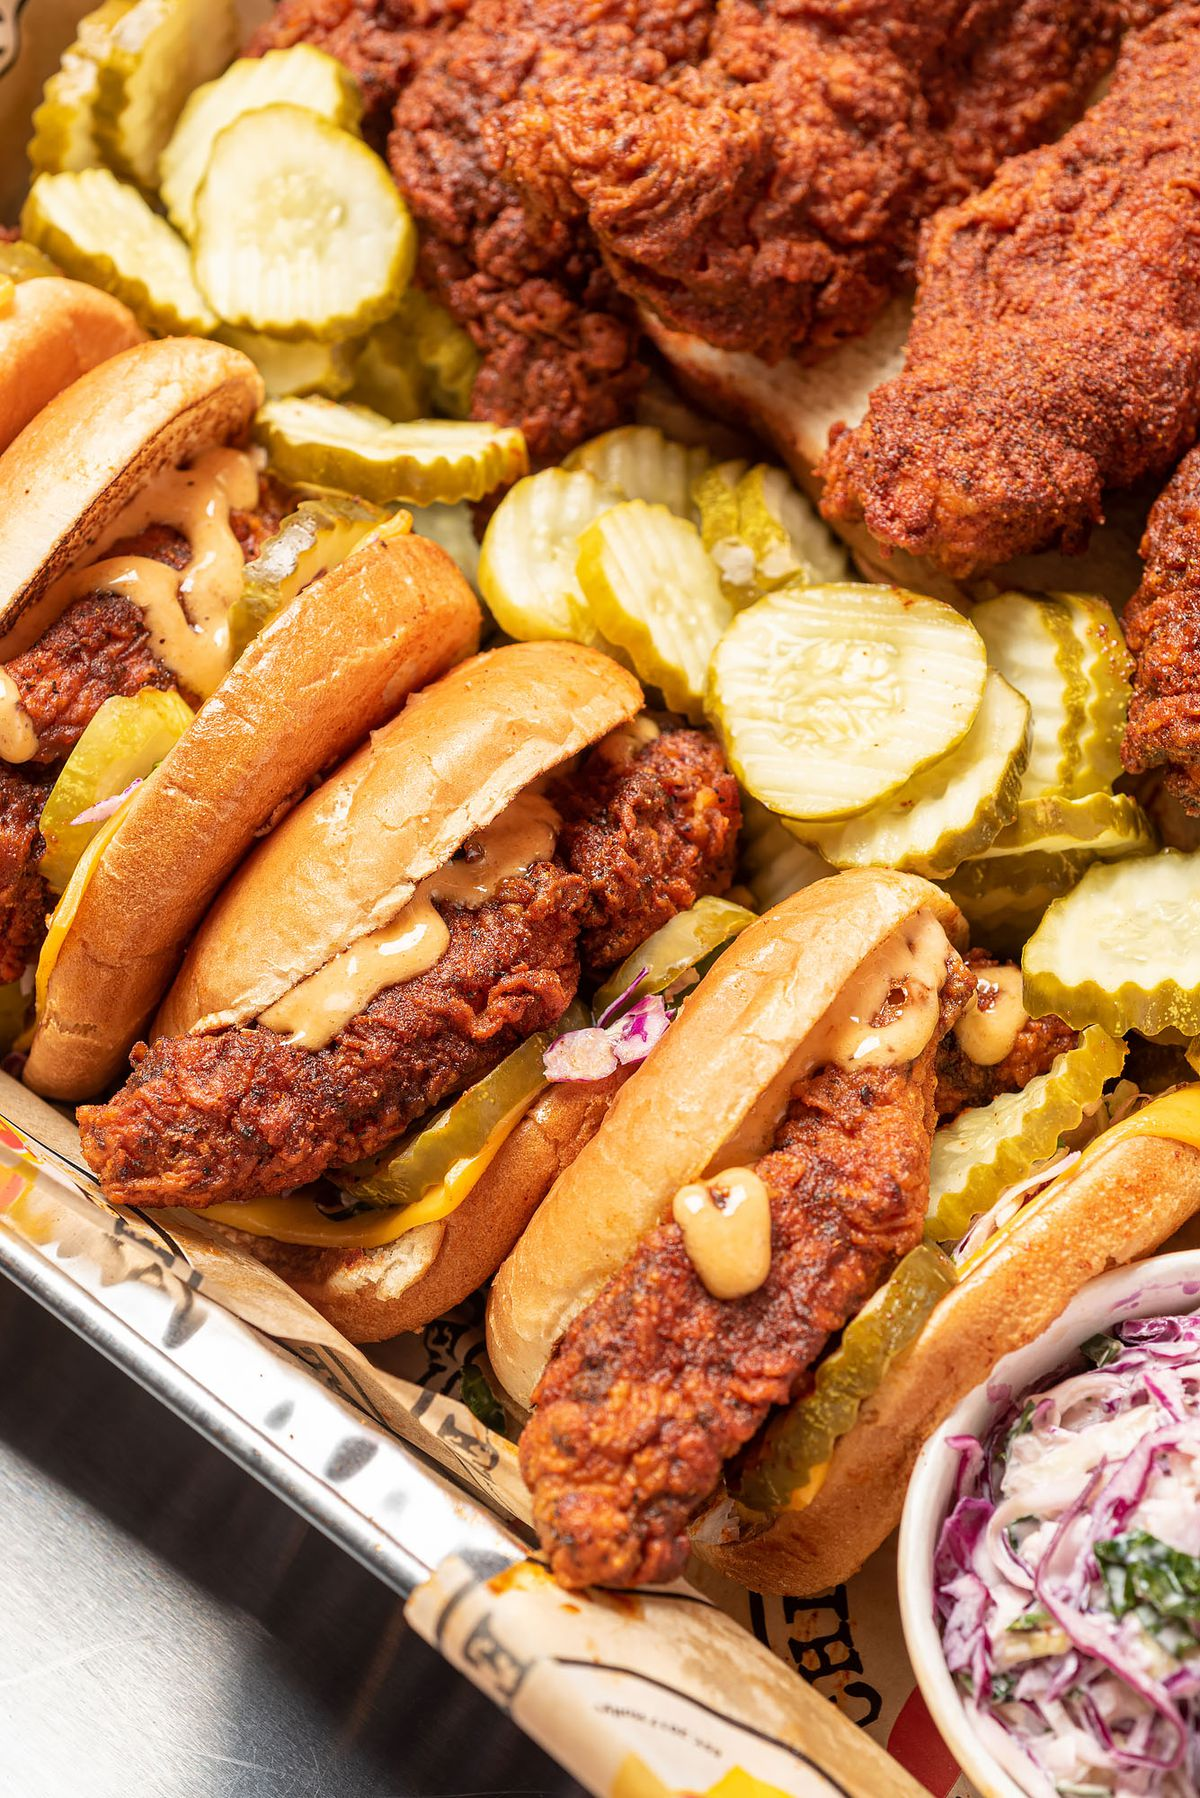 A packed tray with chicken tender sliders, pickles, and lots of sauce.